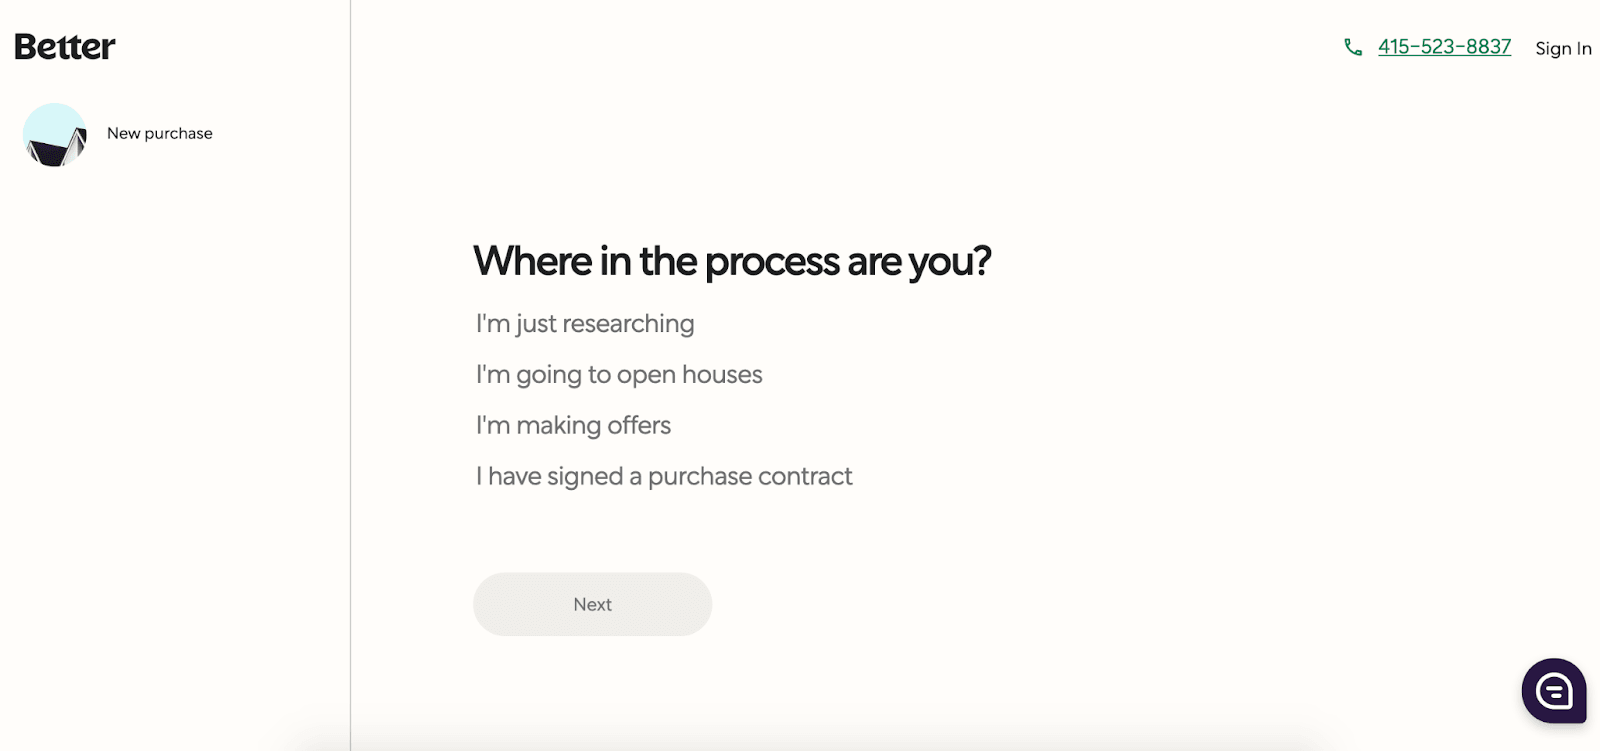 Better.com: Affordable Mortgages In An Easy-to-Use Platform - Where in the process are you